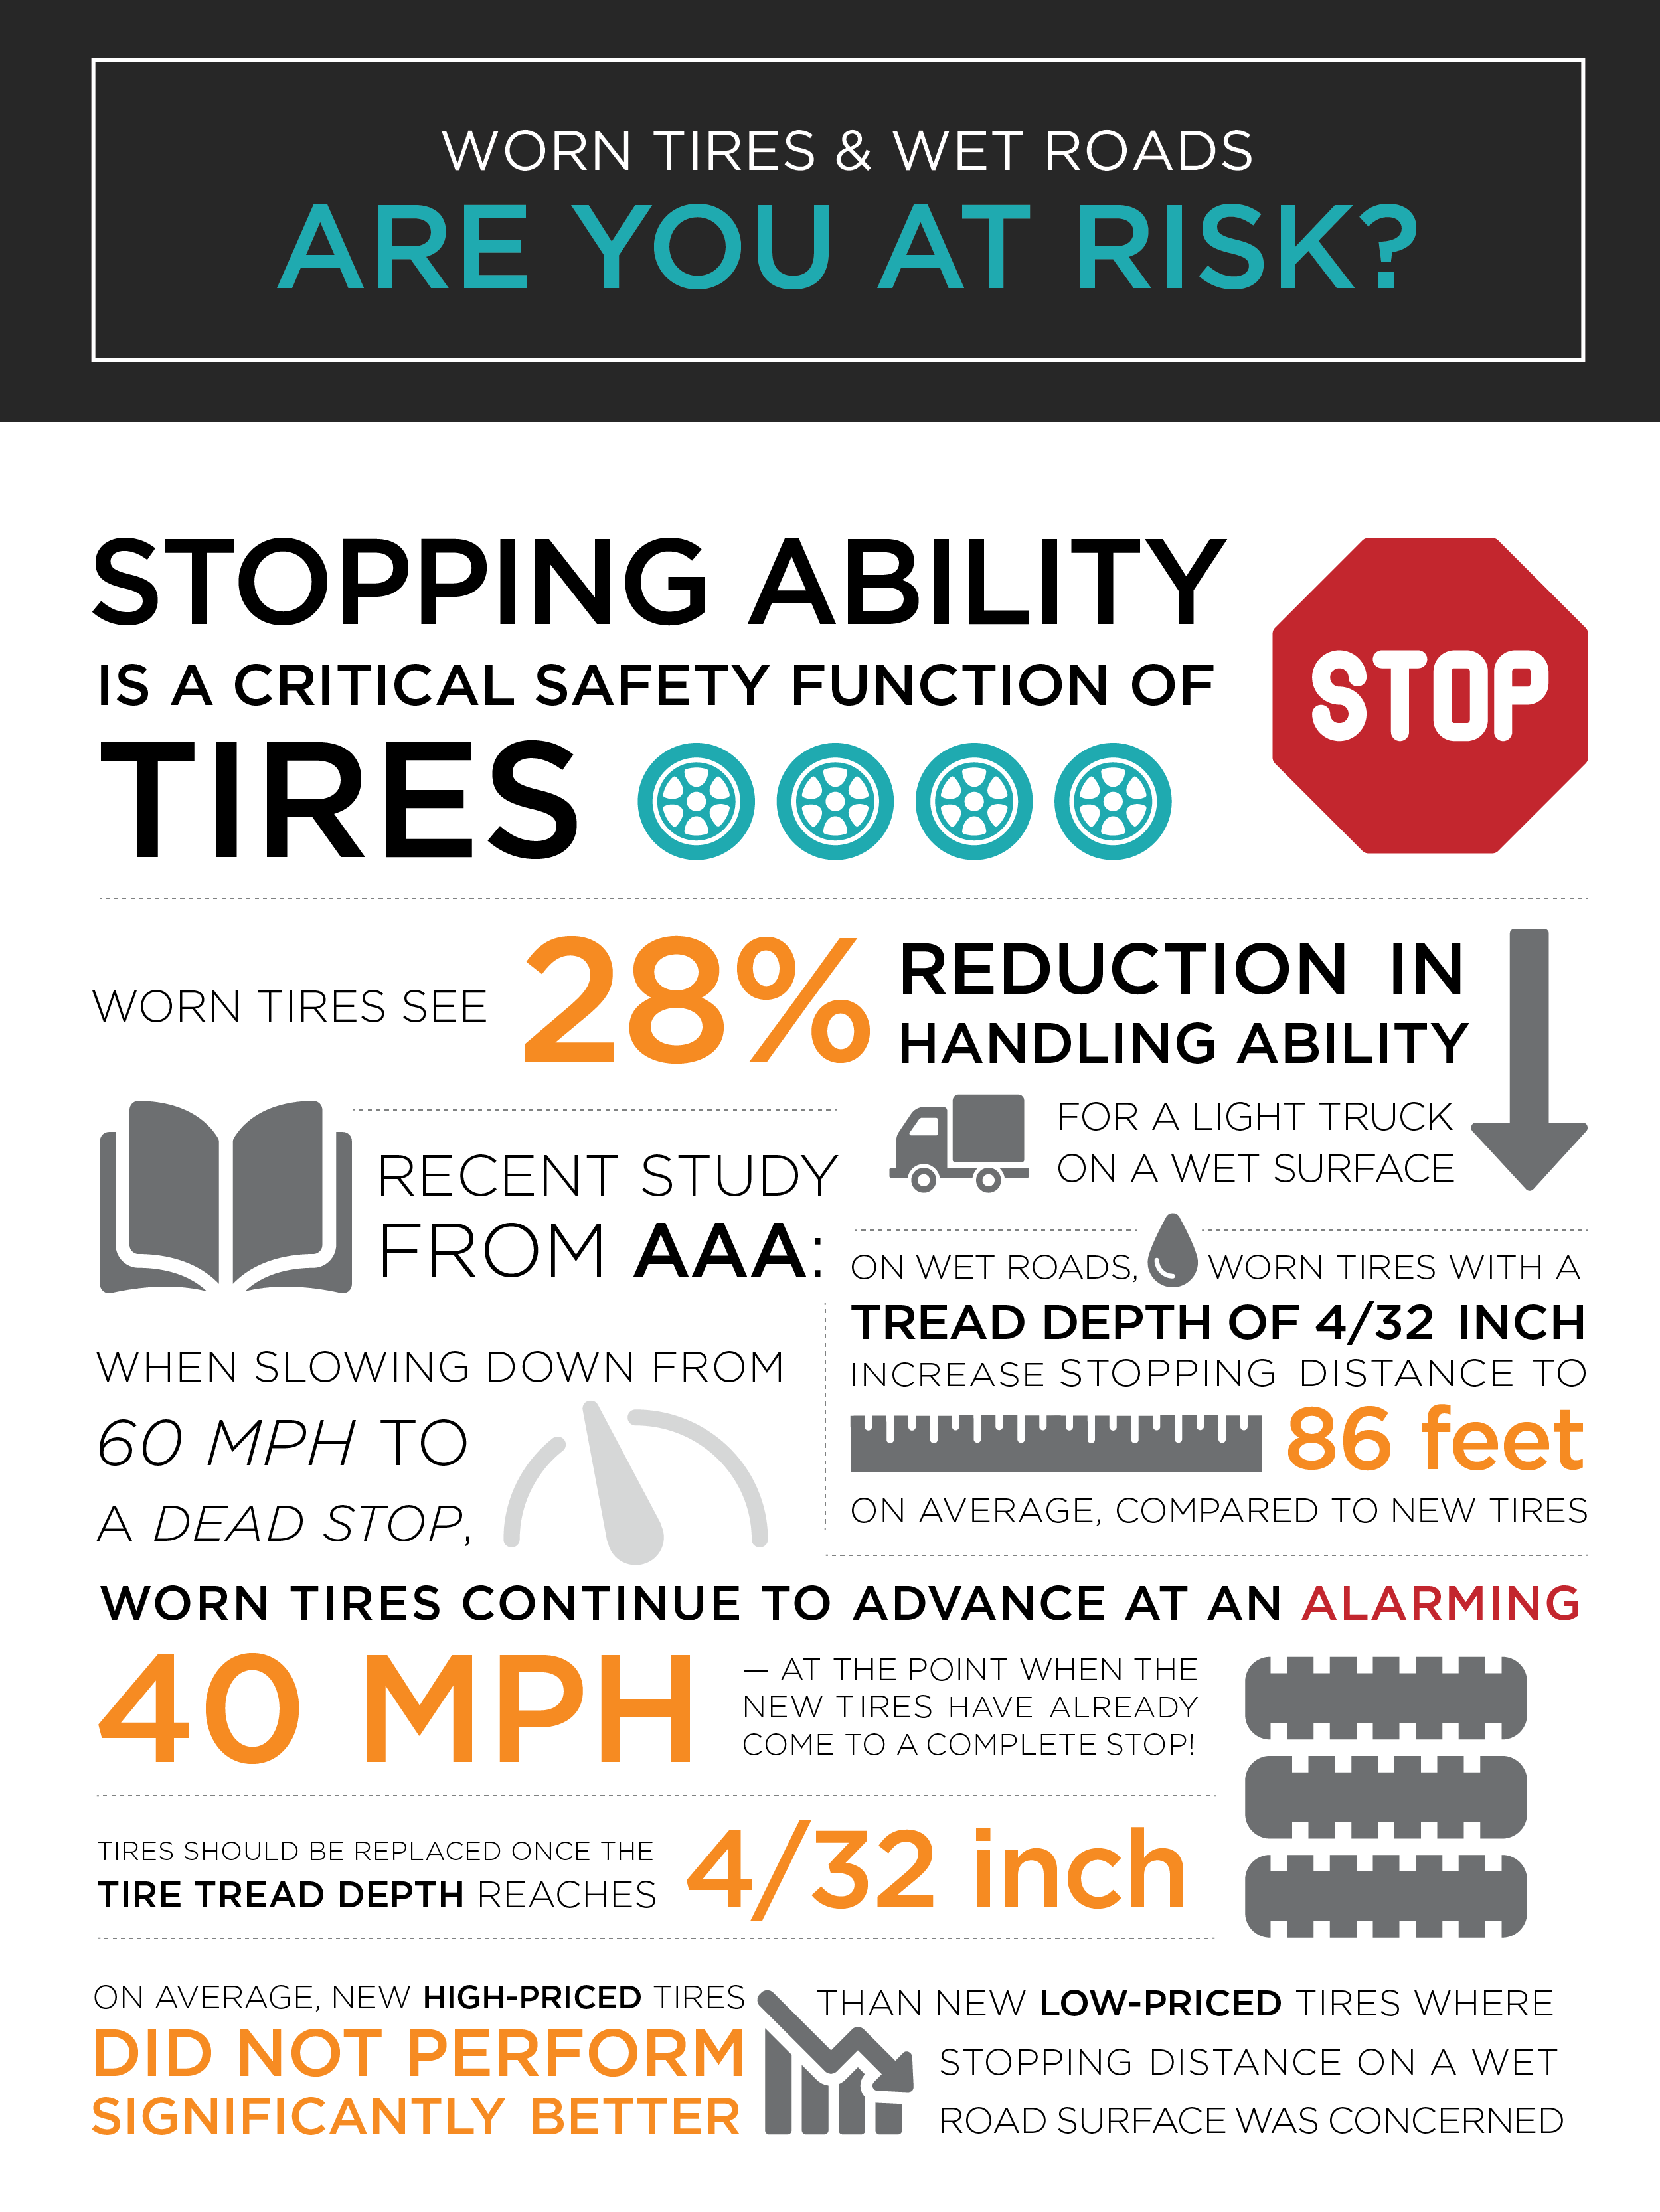 Worn Tires Spike Accident Risk by 28%